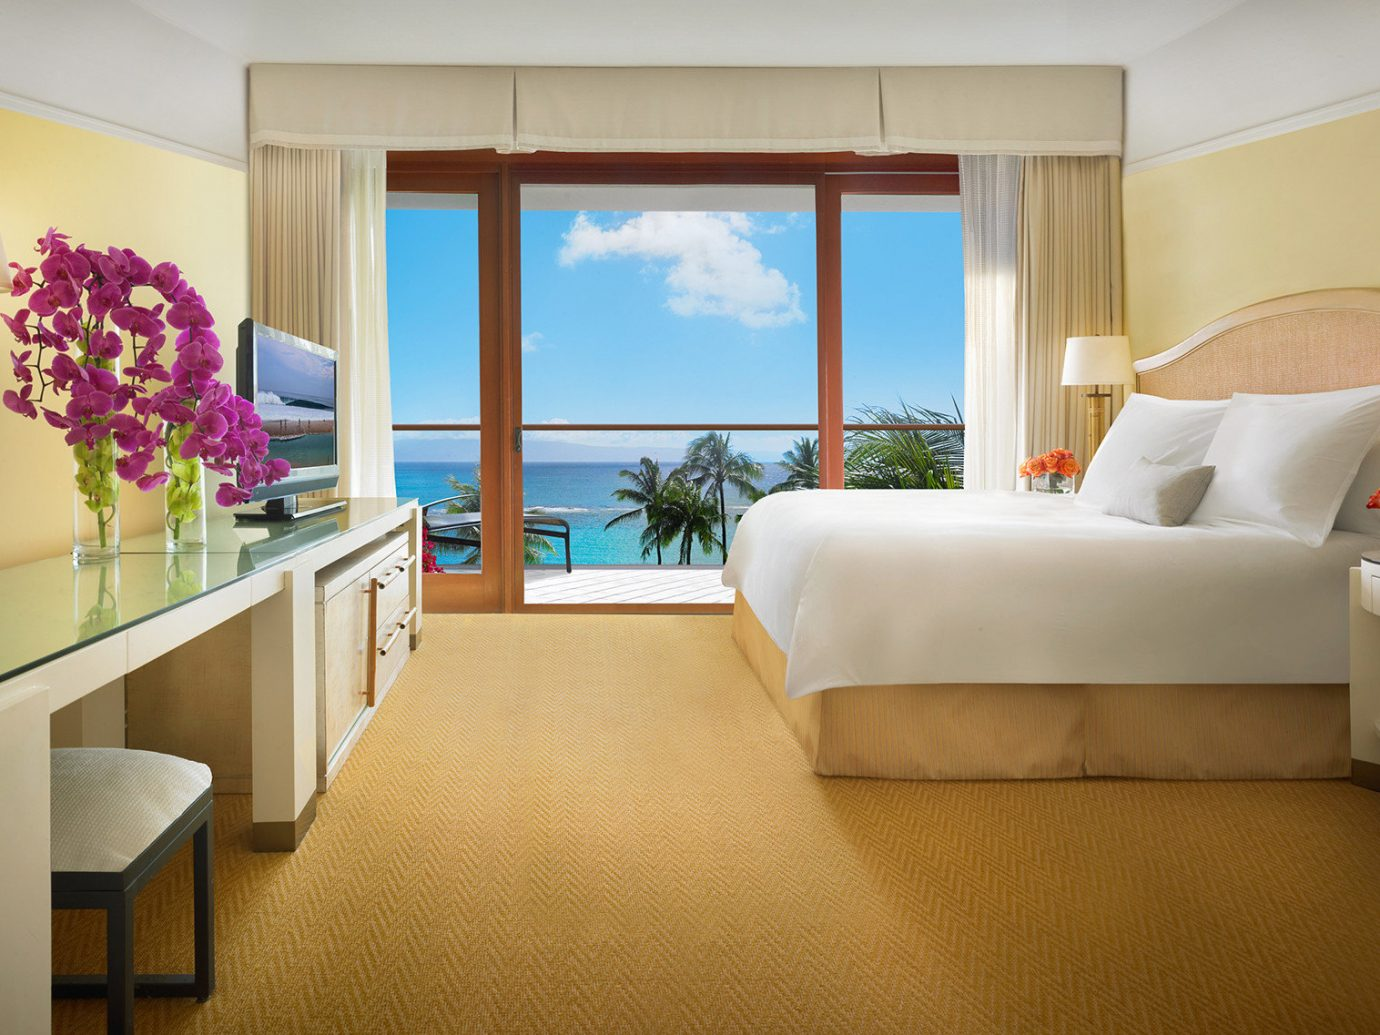 Beach Boutique Hotels Hotels Luxury Travel indoor wall floor sofa room window ceiling Suite interior design bed hotel Bedroom furniture interior designer area Modern decorated